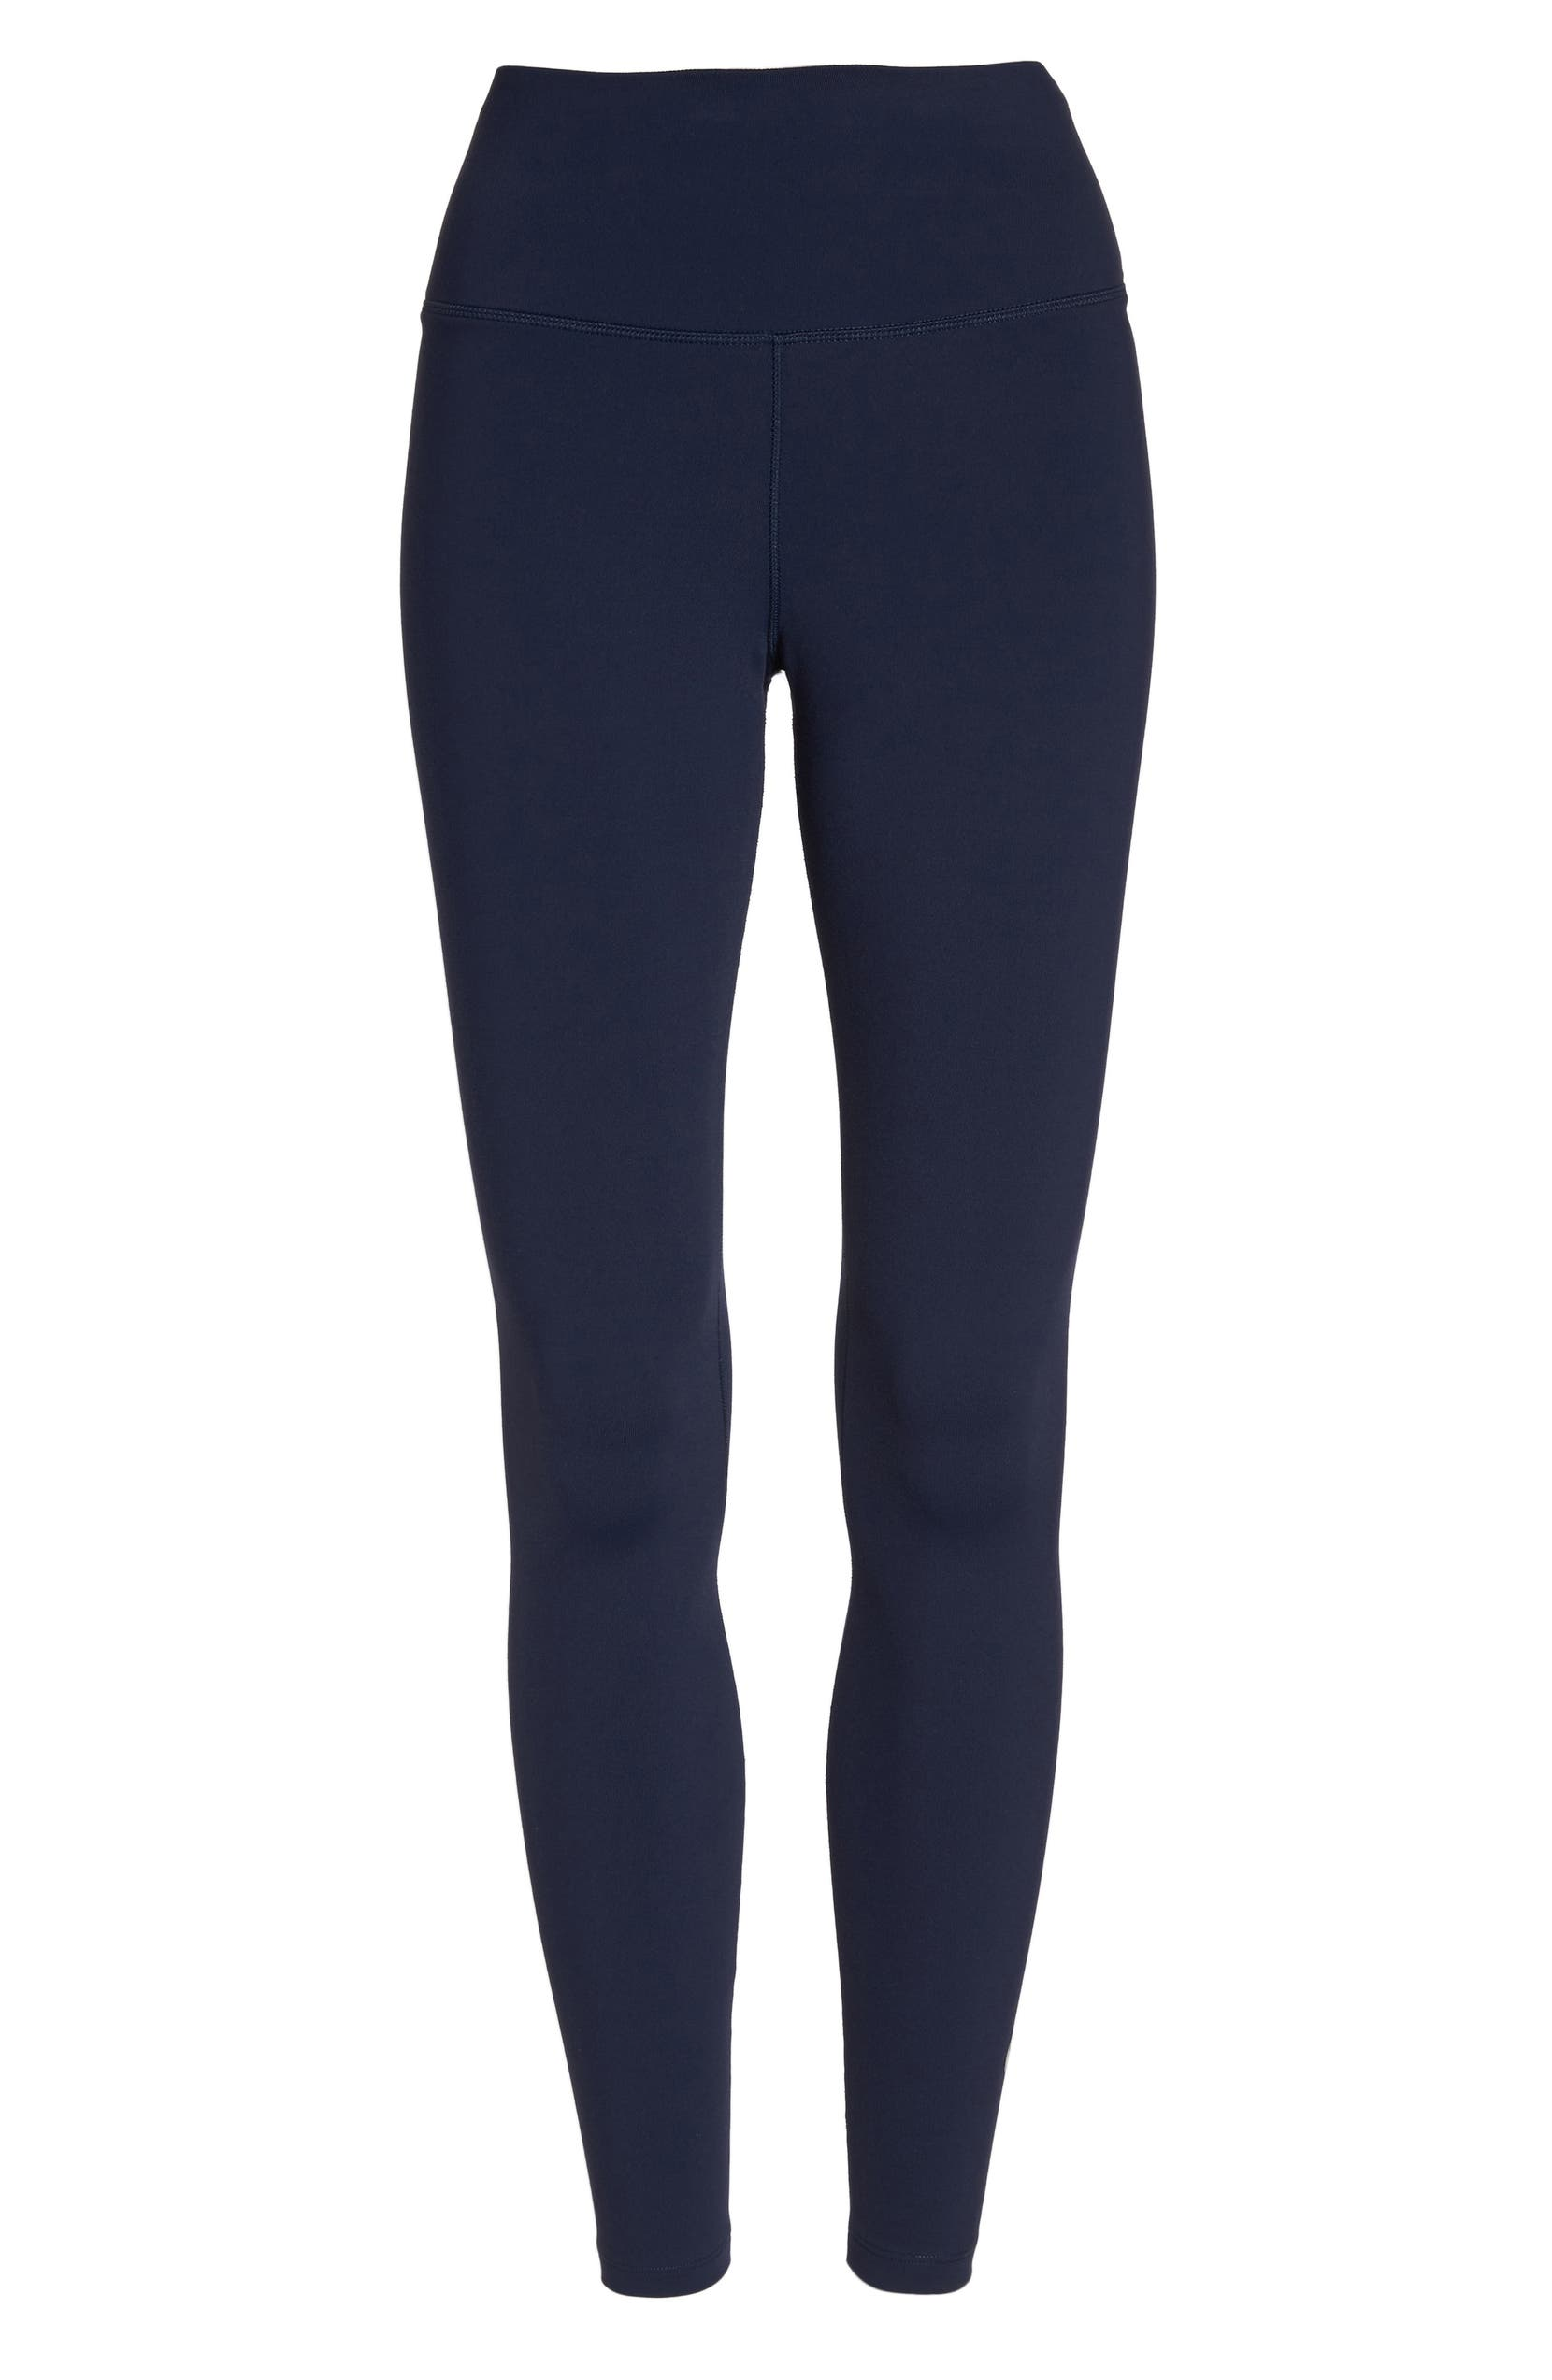 d6023df14c10a8 Nike Sculpt Lux Training Tights | Nordstrom